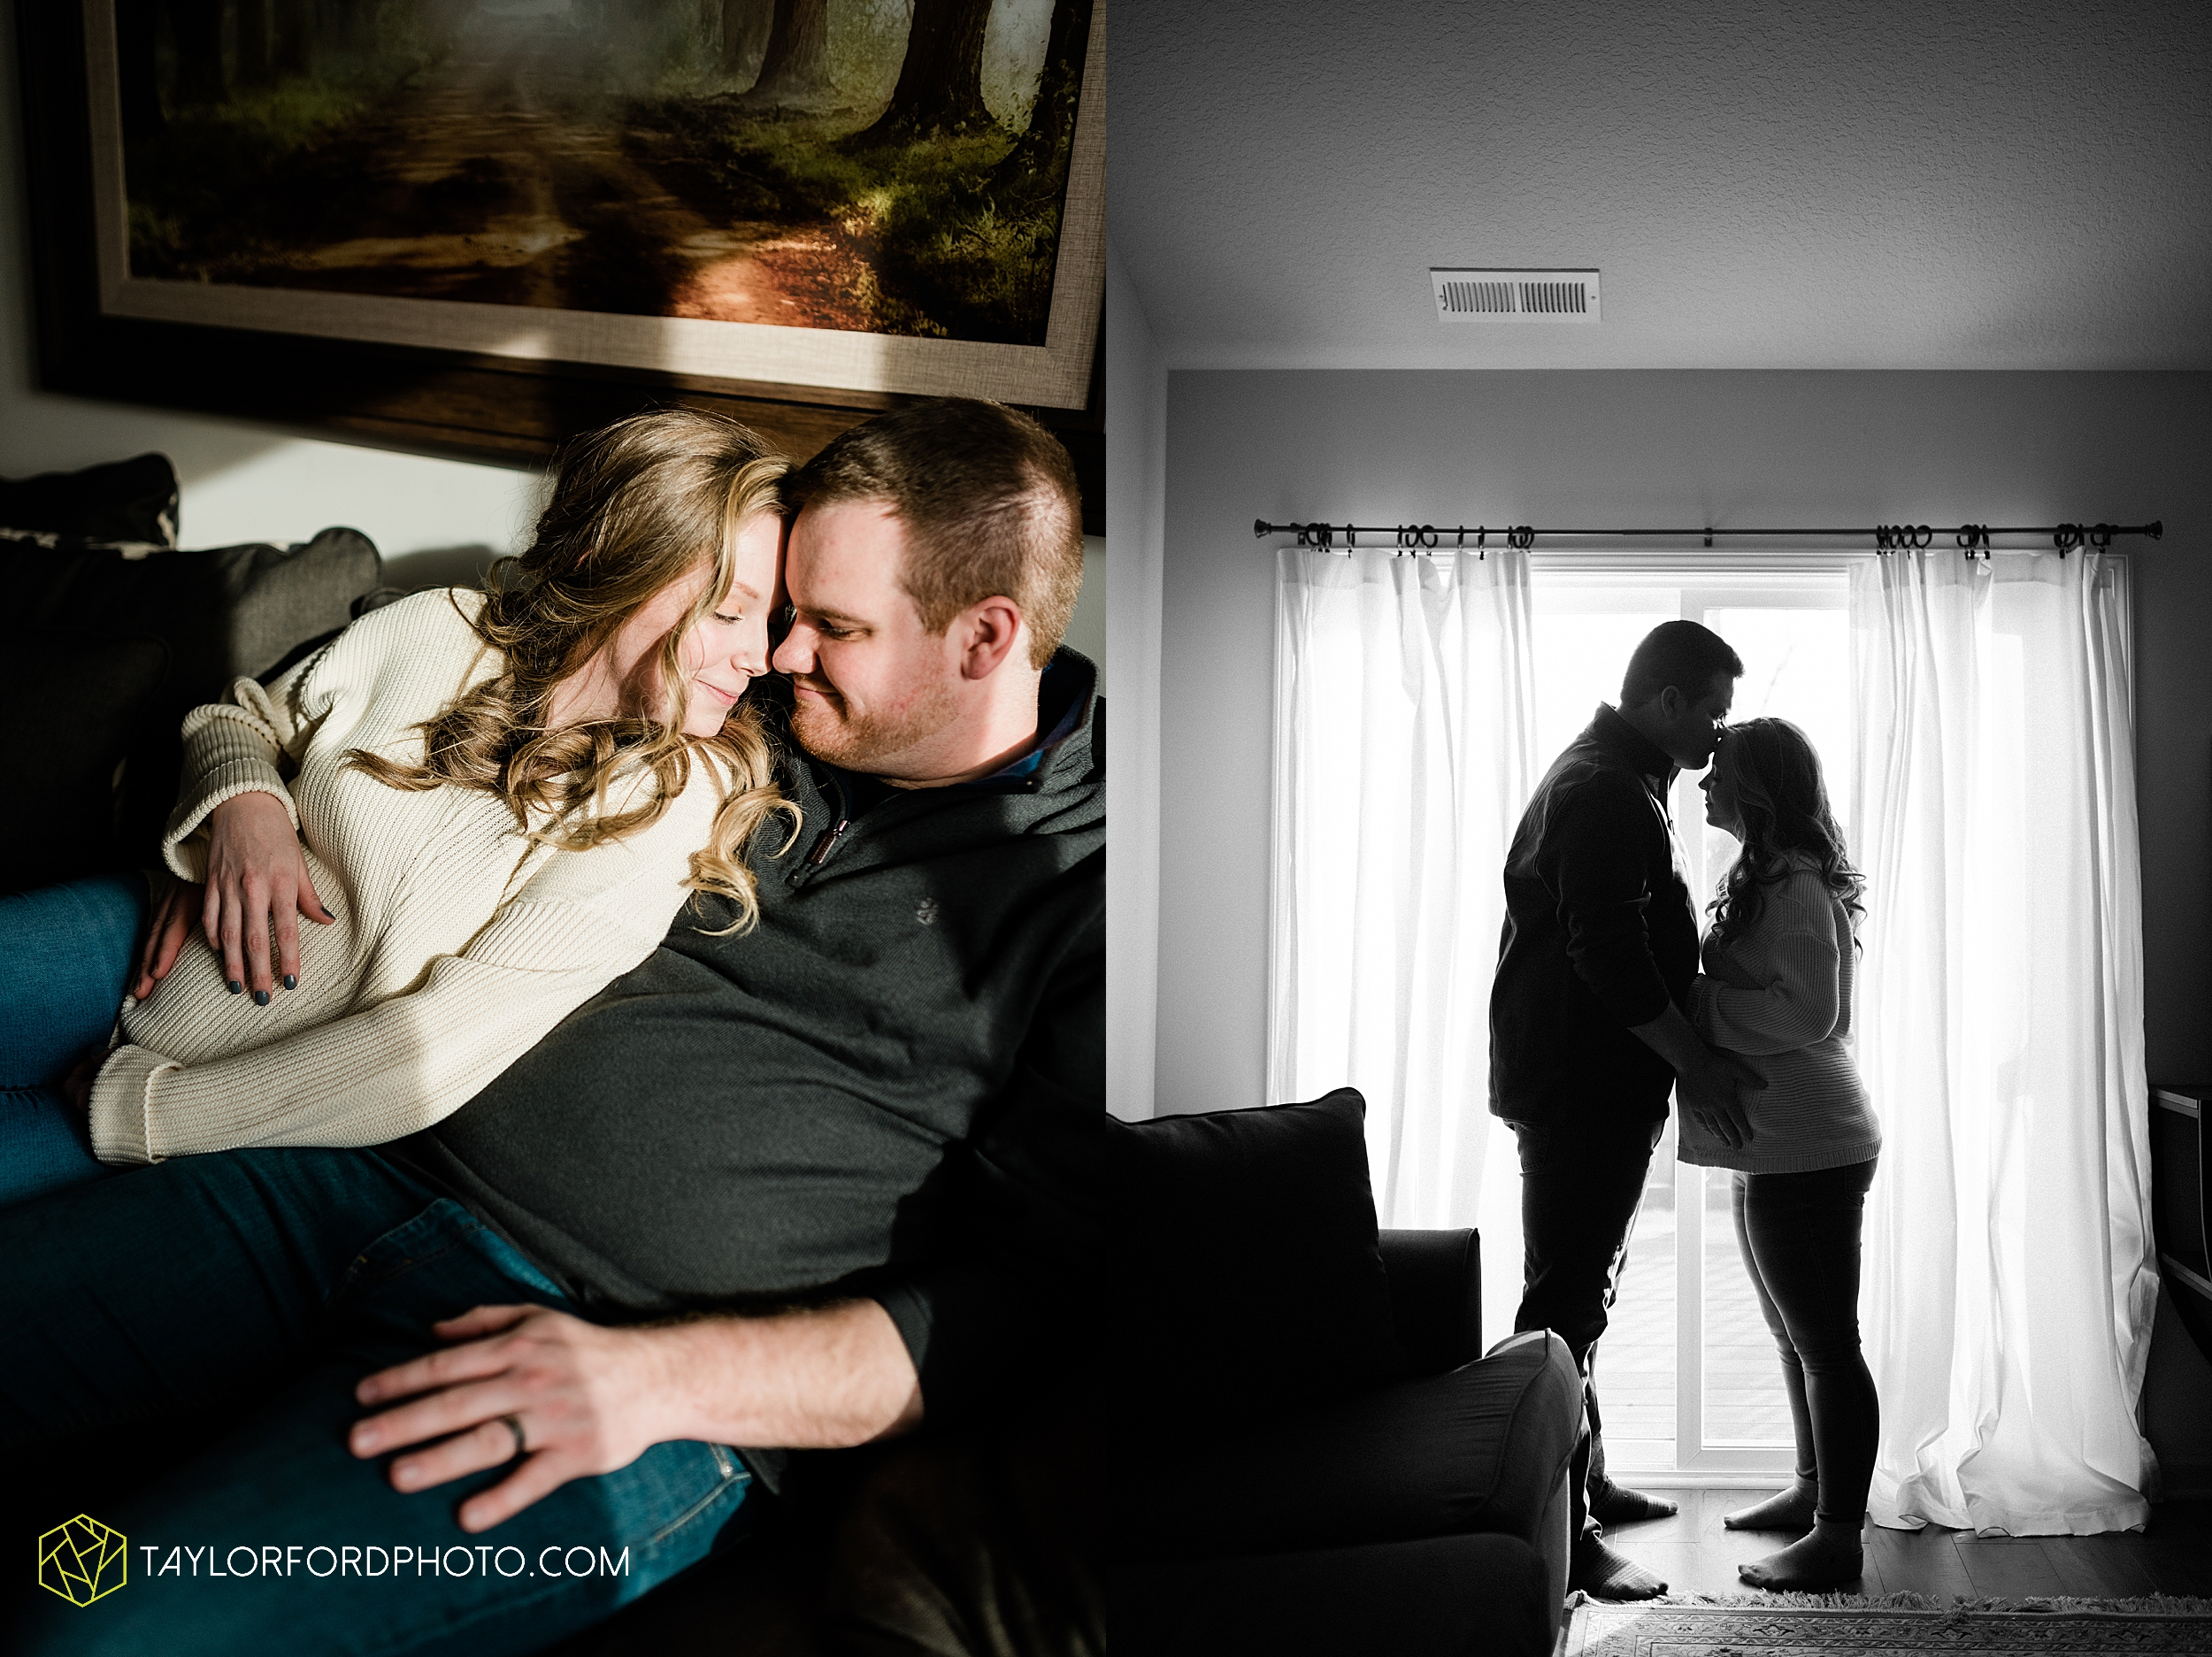 schafer-maternity-pregnant-at-home-fort-wayne-indiana-photography-taylor-ford-hirschy-photographer_2258.jpg